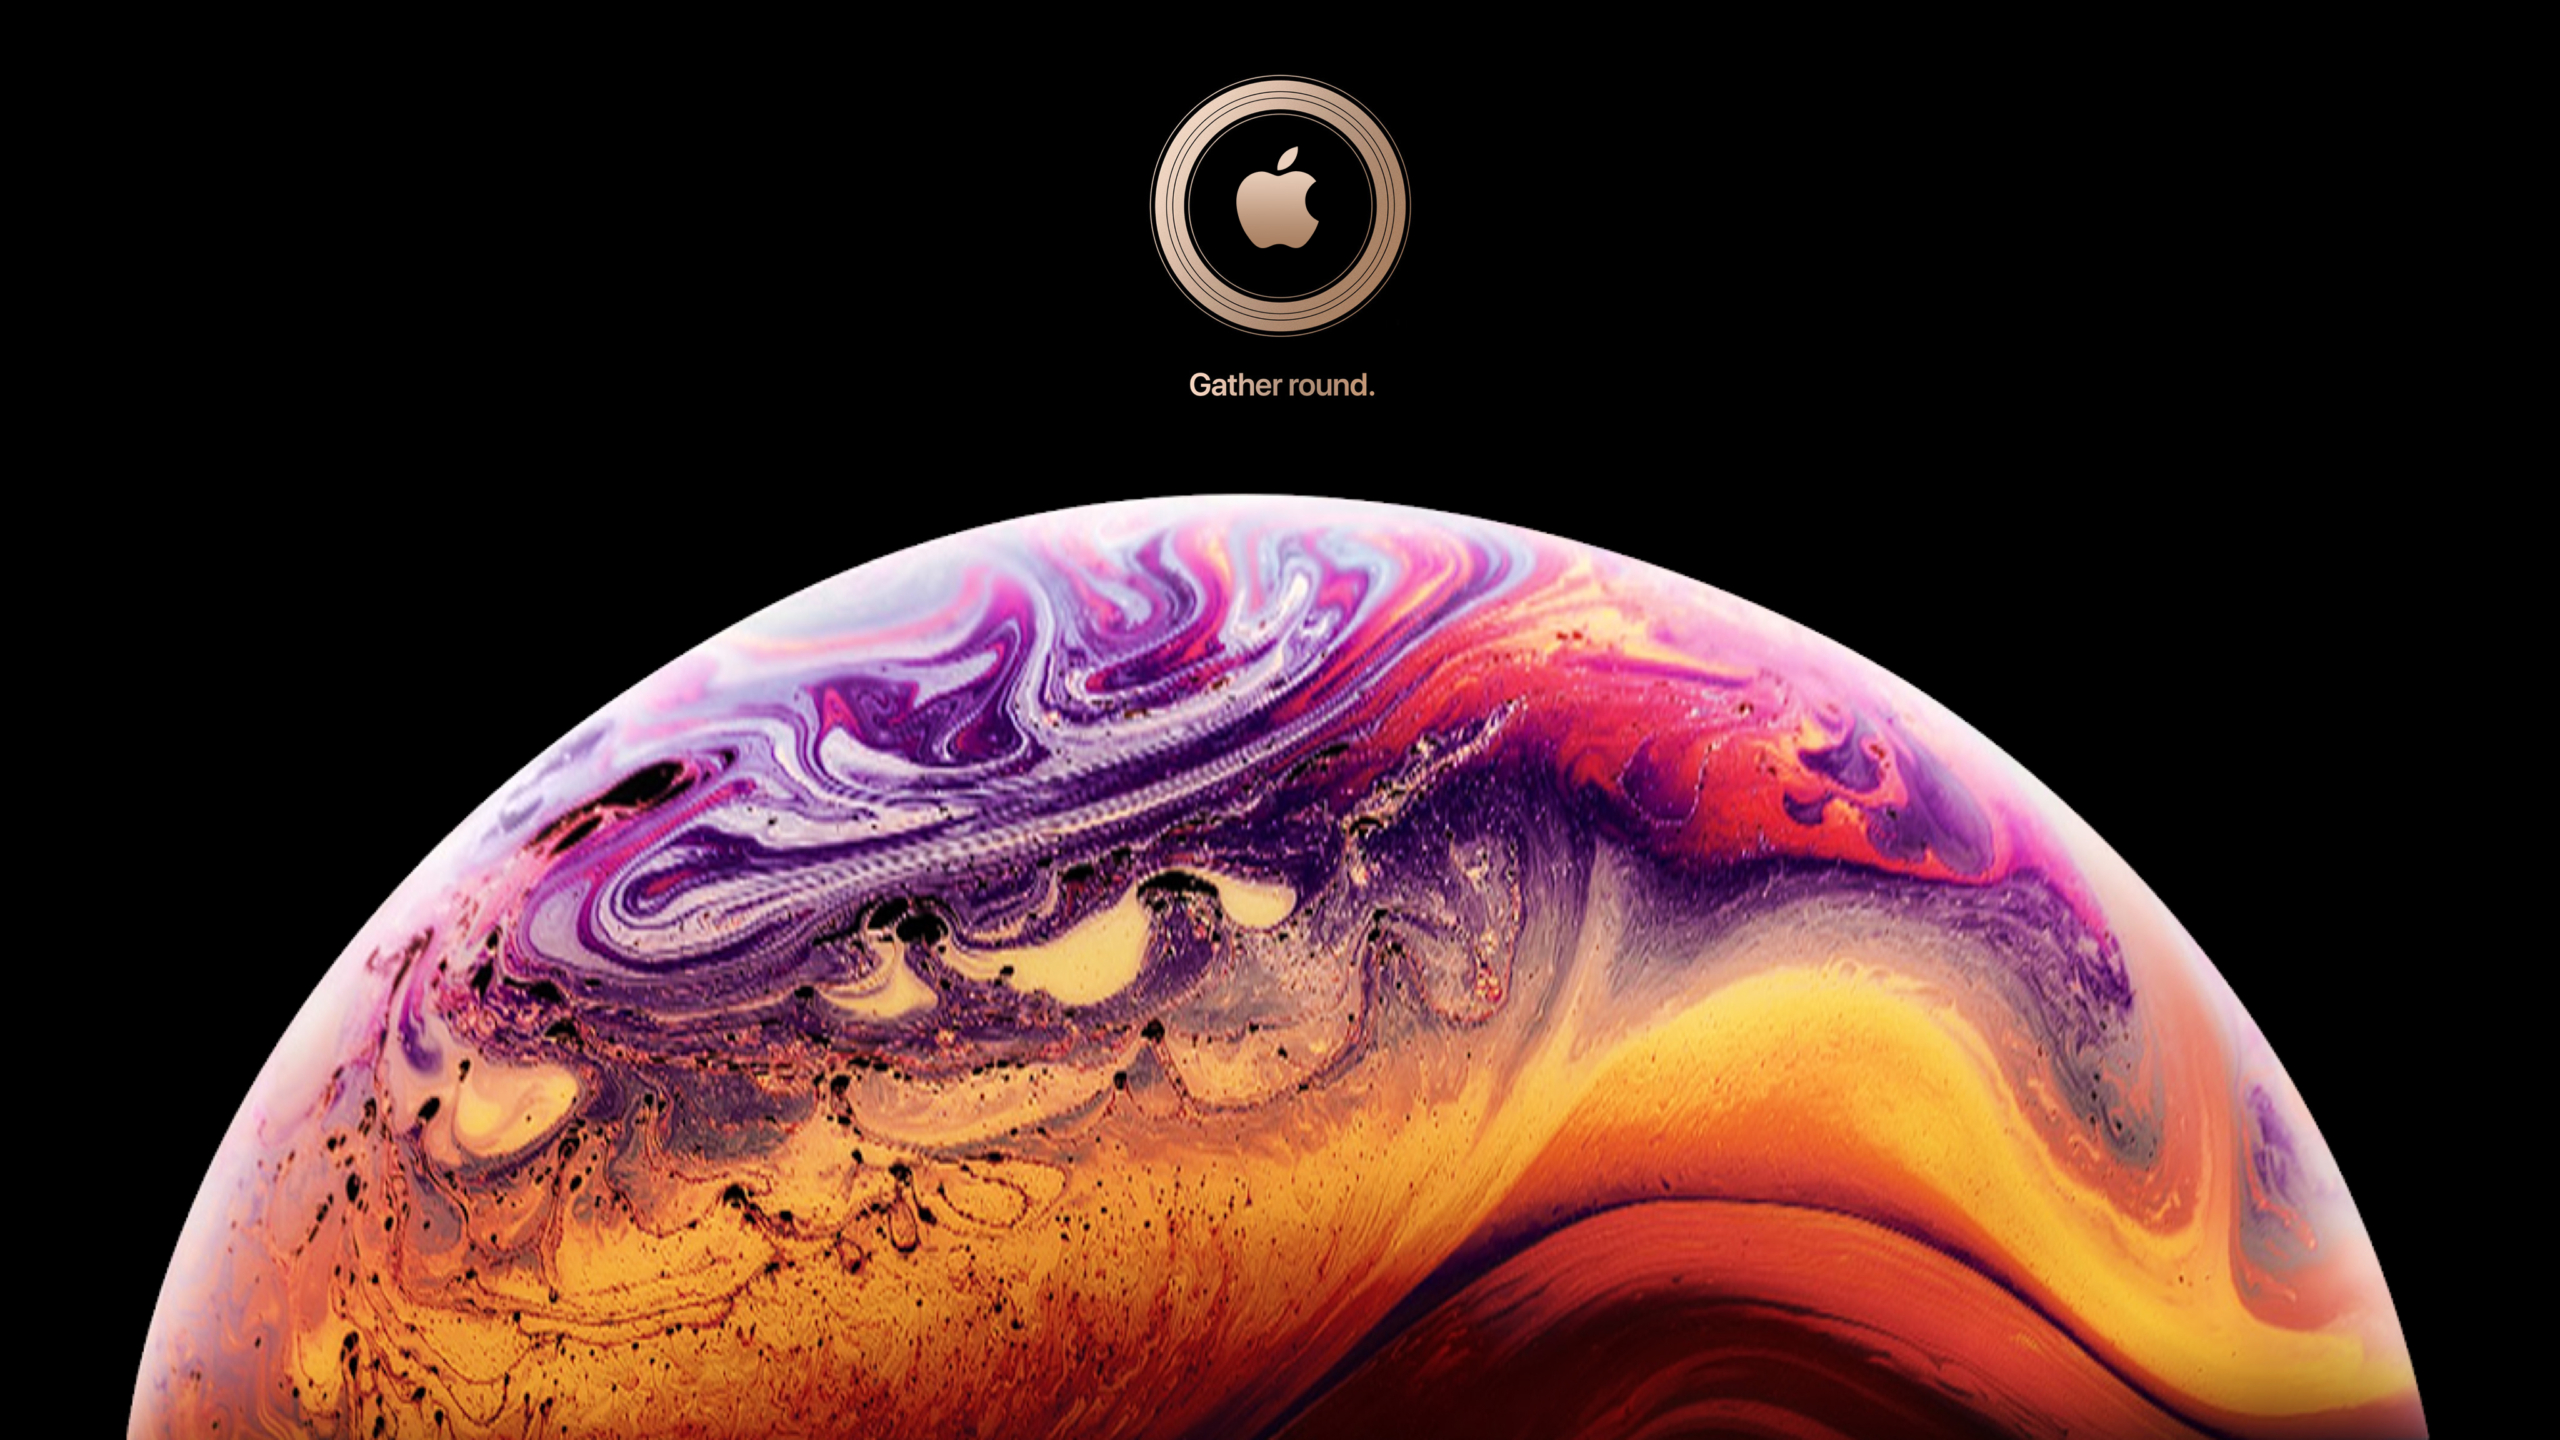 Free iPhone Xs Wallpaper – Don't Miss Out on One of Your Favorite Features